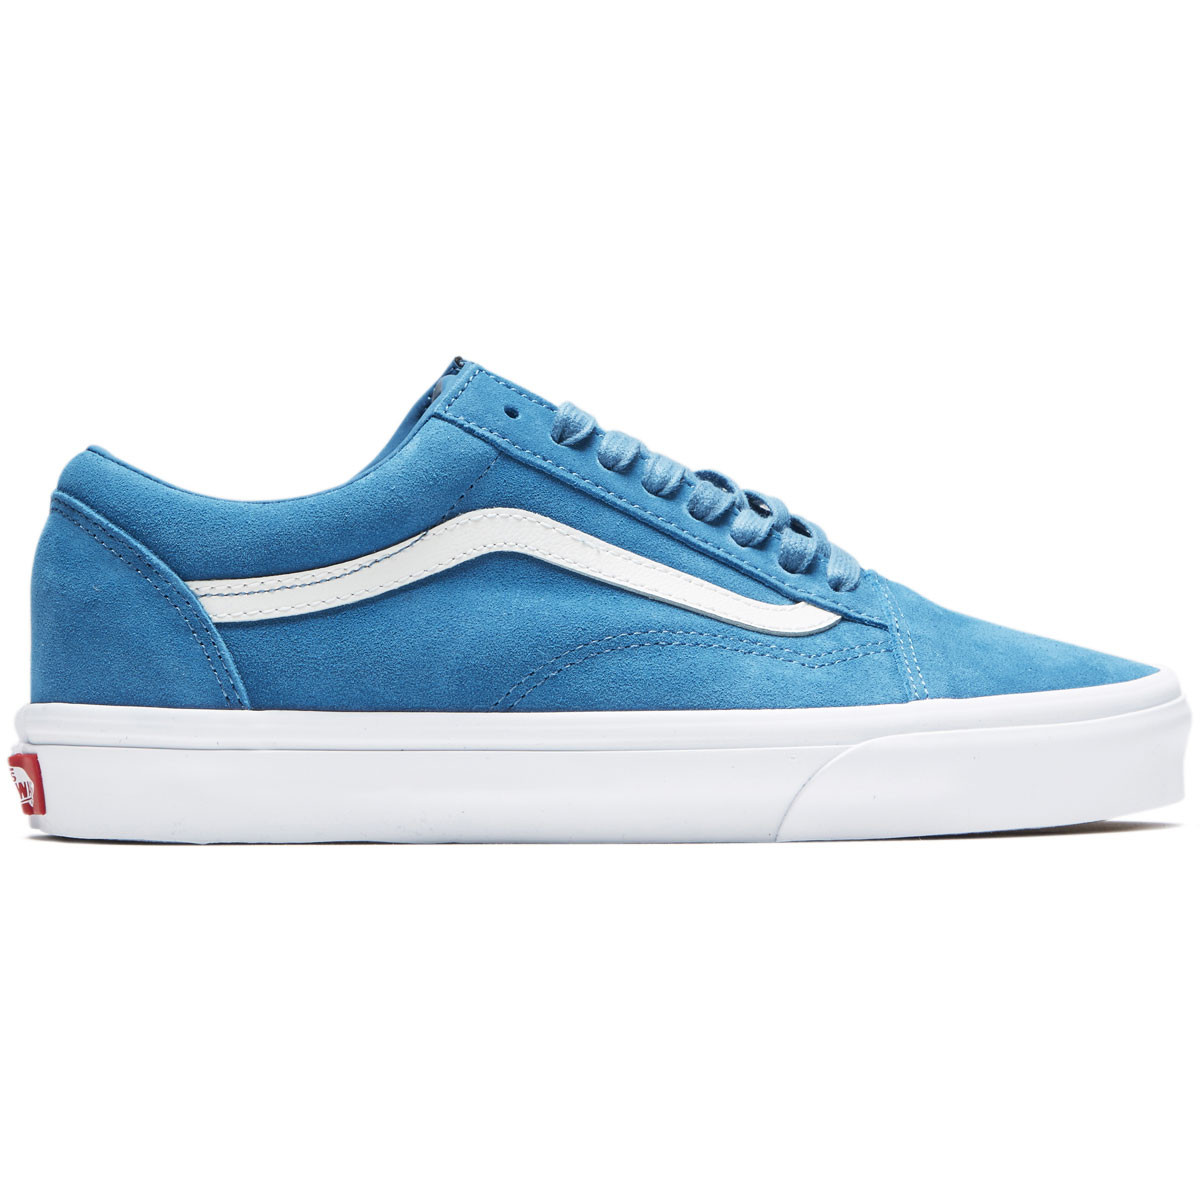 9257b8a7e4 Vans Old Skool Shoes - Blue Sapphire True White - 8.0